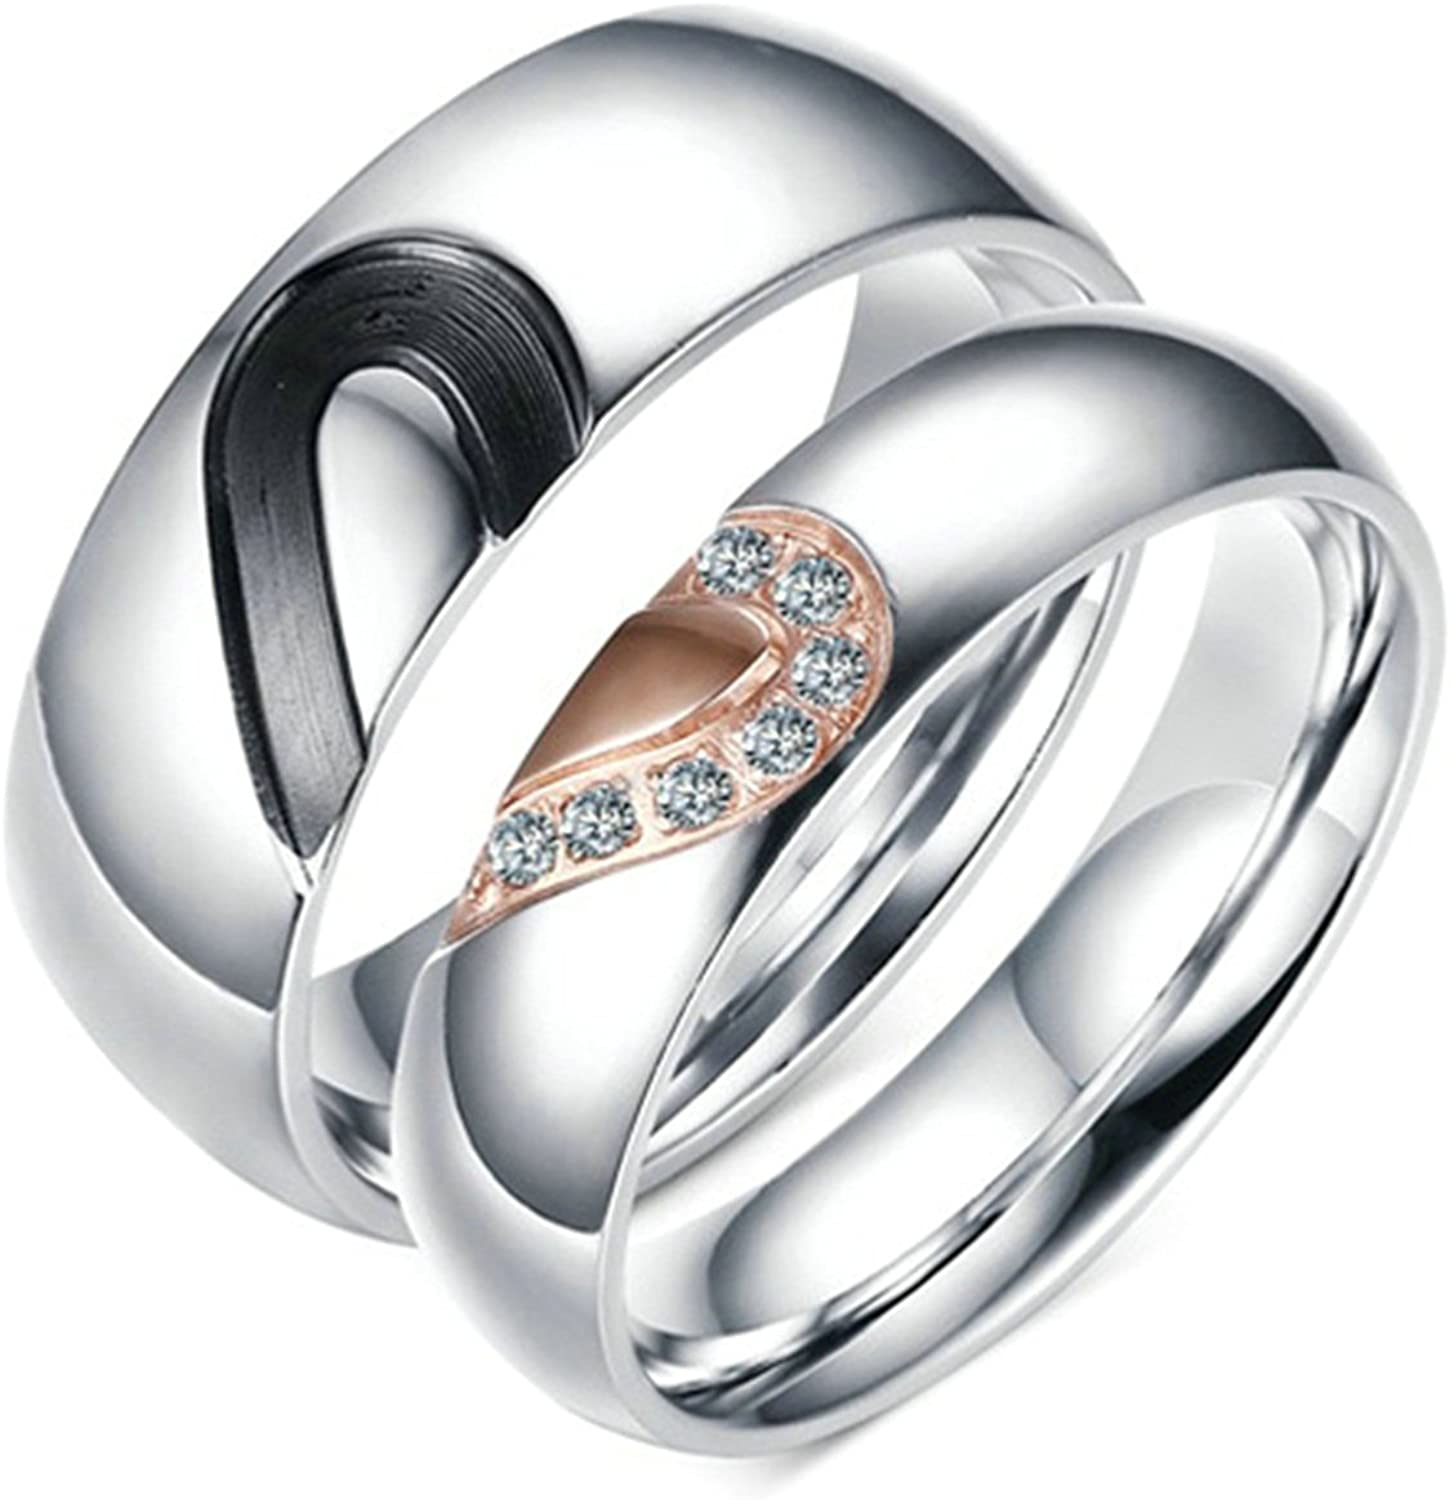 Daesar Stainless Steel Purchase Rings Engraved Ro Max 68% OFF Silver Heart Ring